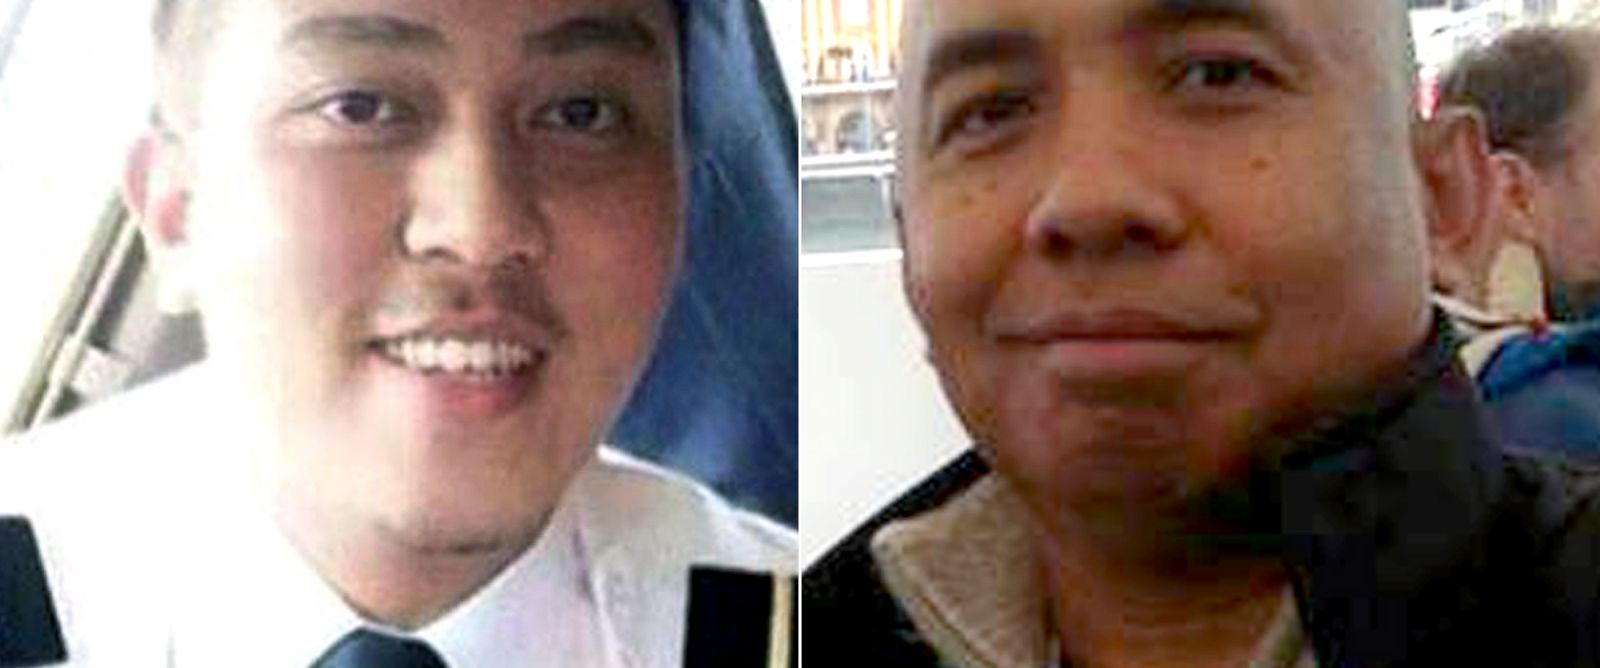 PHOTO: Fariq Abdul Hamid and Zaharie Ahmad Shah, pilots of Malaysia Airlines flight MH370, are seen in these photos posted to their community Facebook pages.